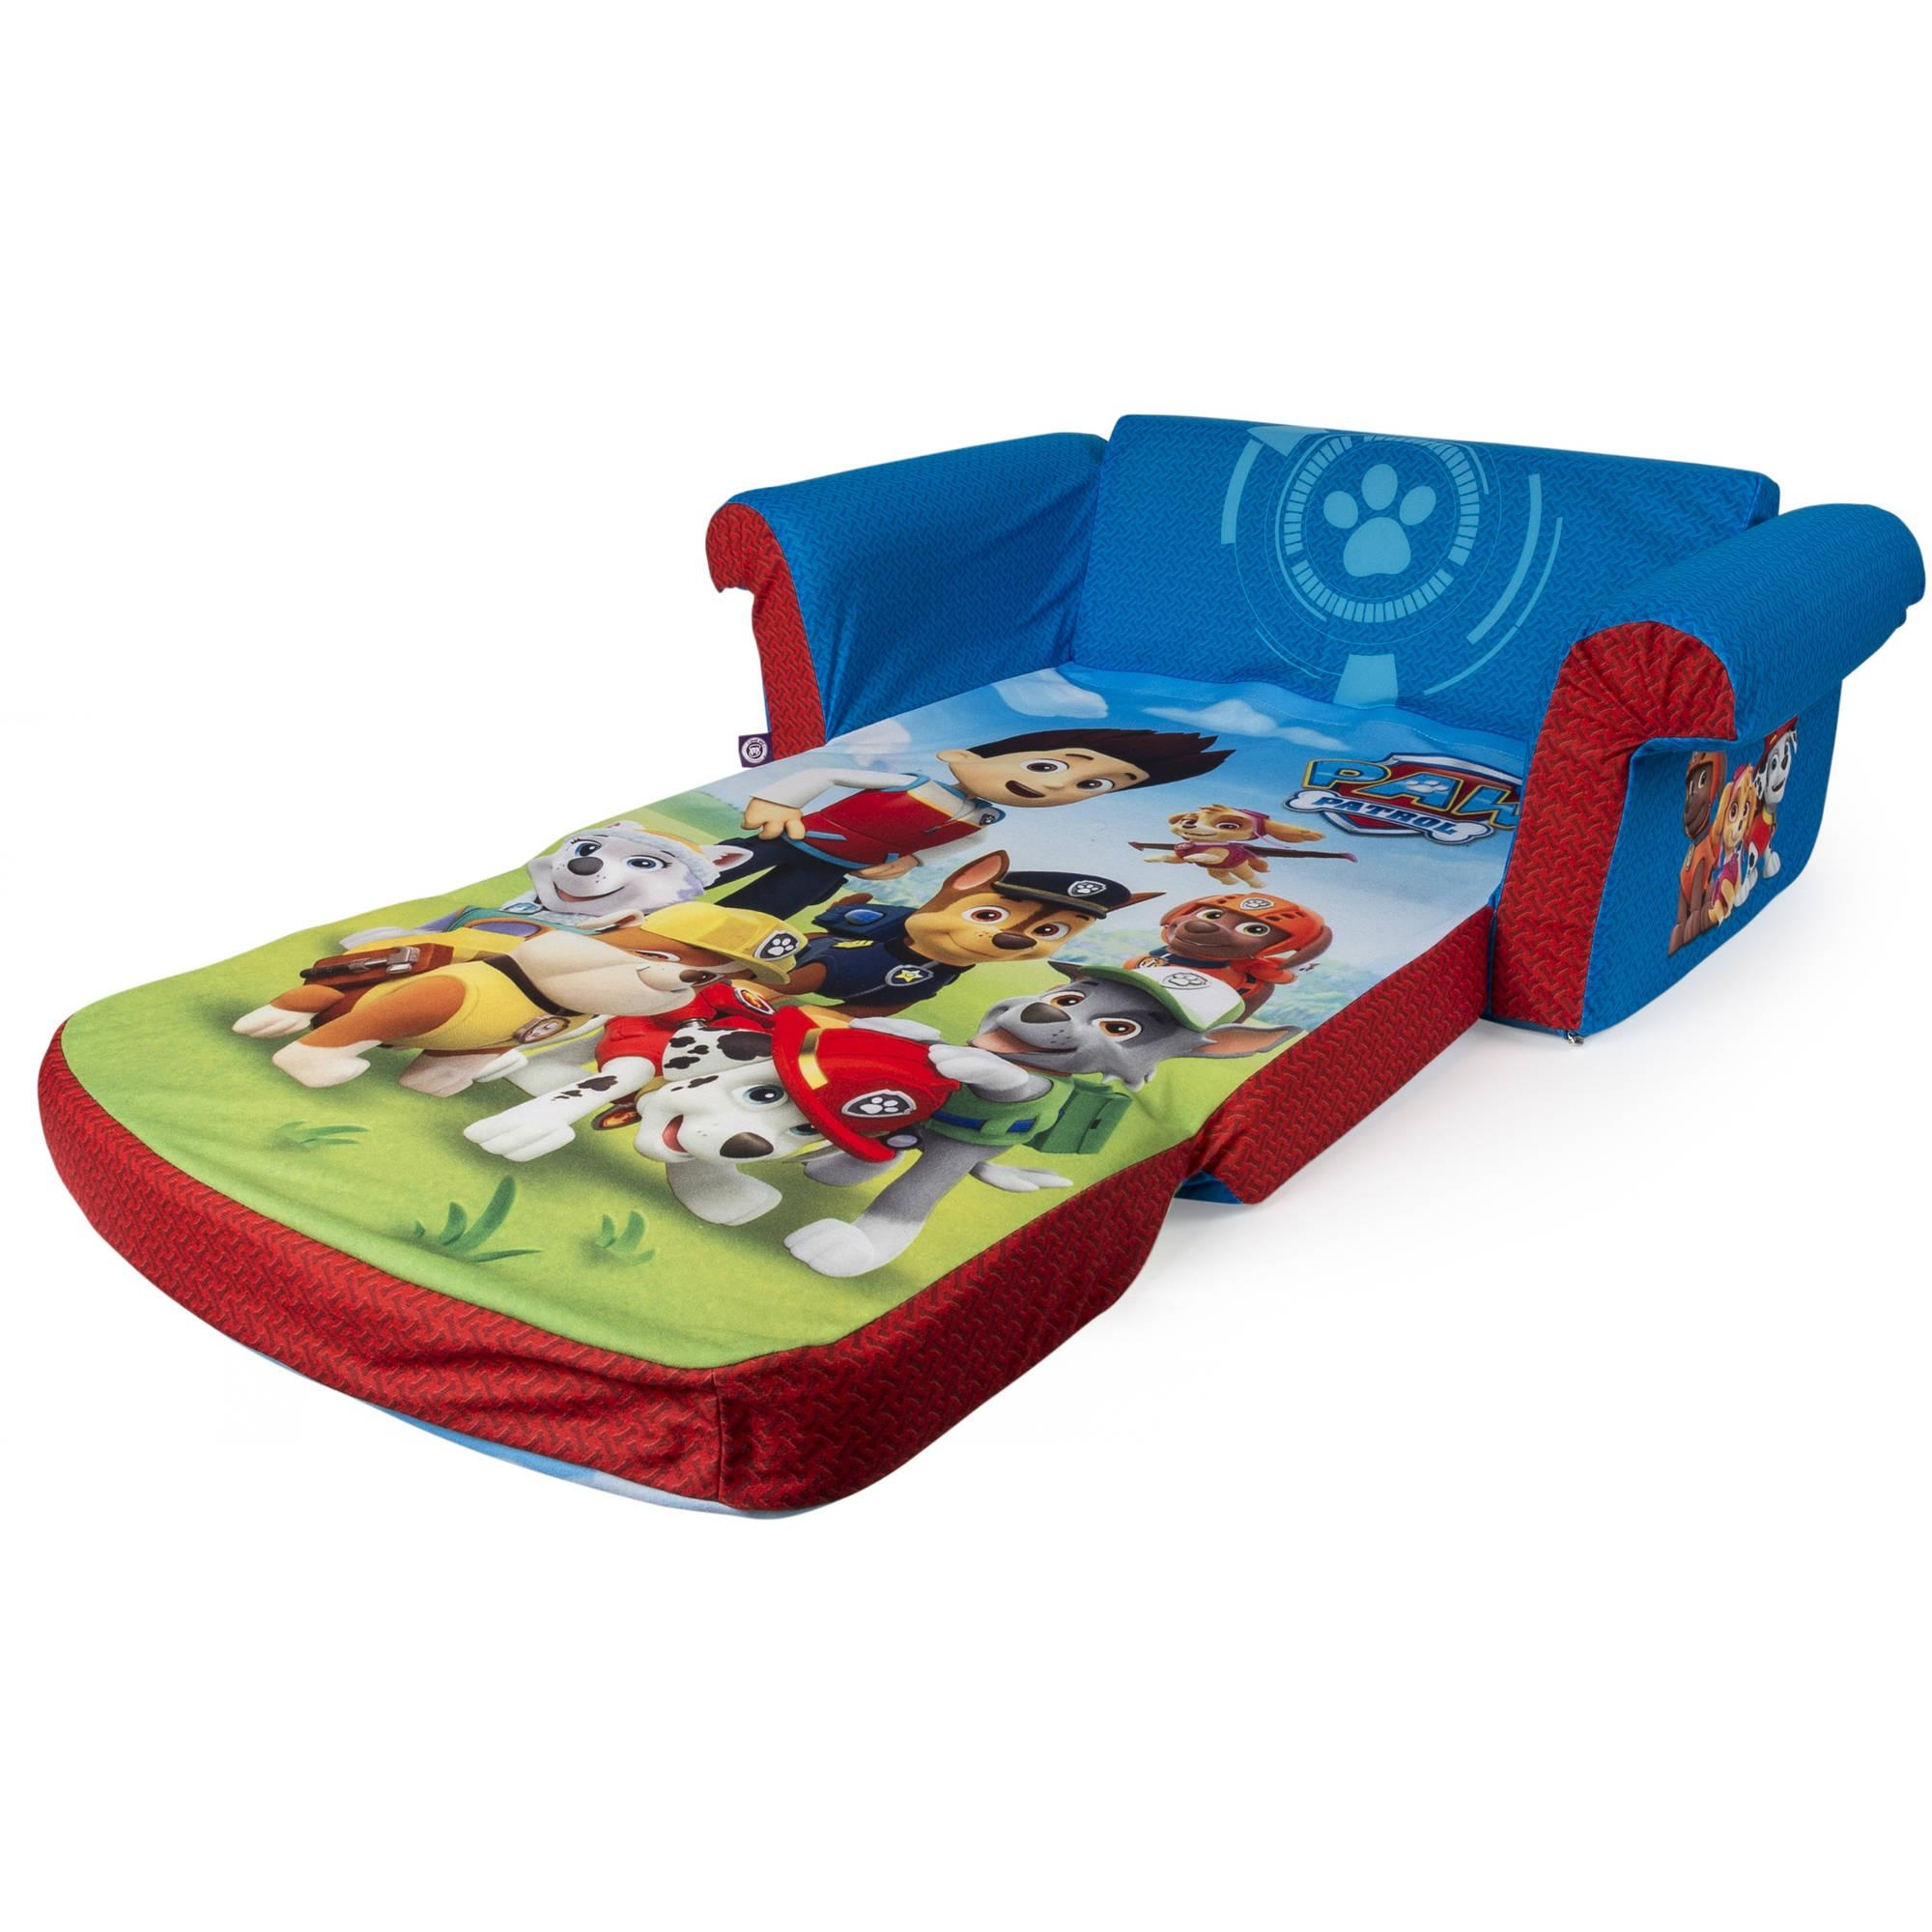 Marshmallow Furniture, Children's 2 In 1 Flip Open Foam Sofa Regarding Mickey Flip Sofas (Image 6 of 20)